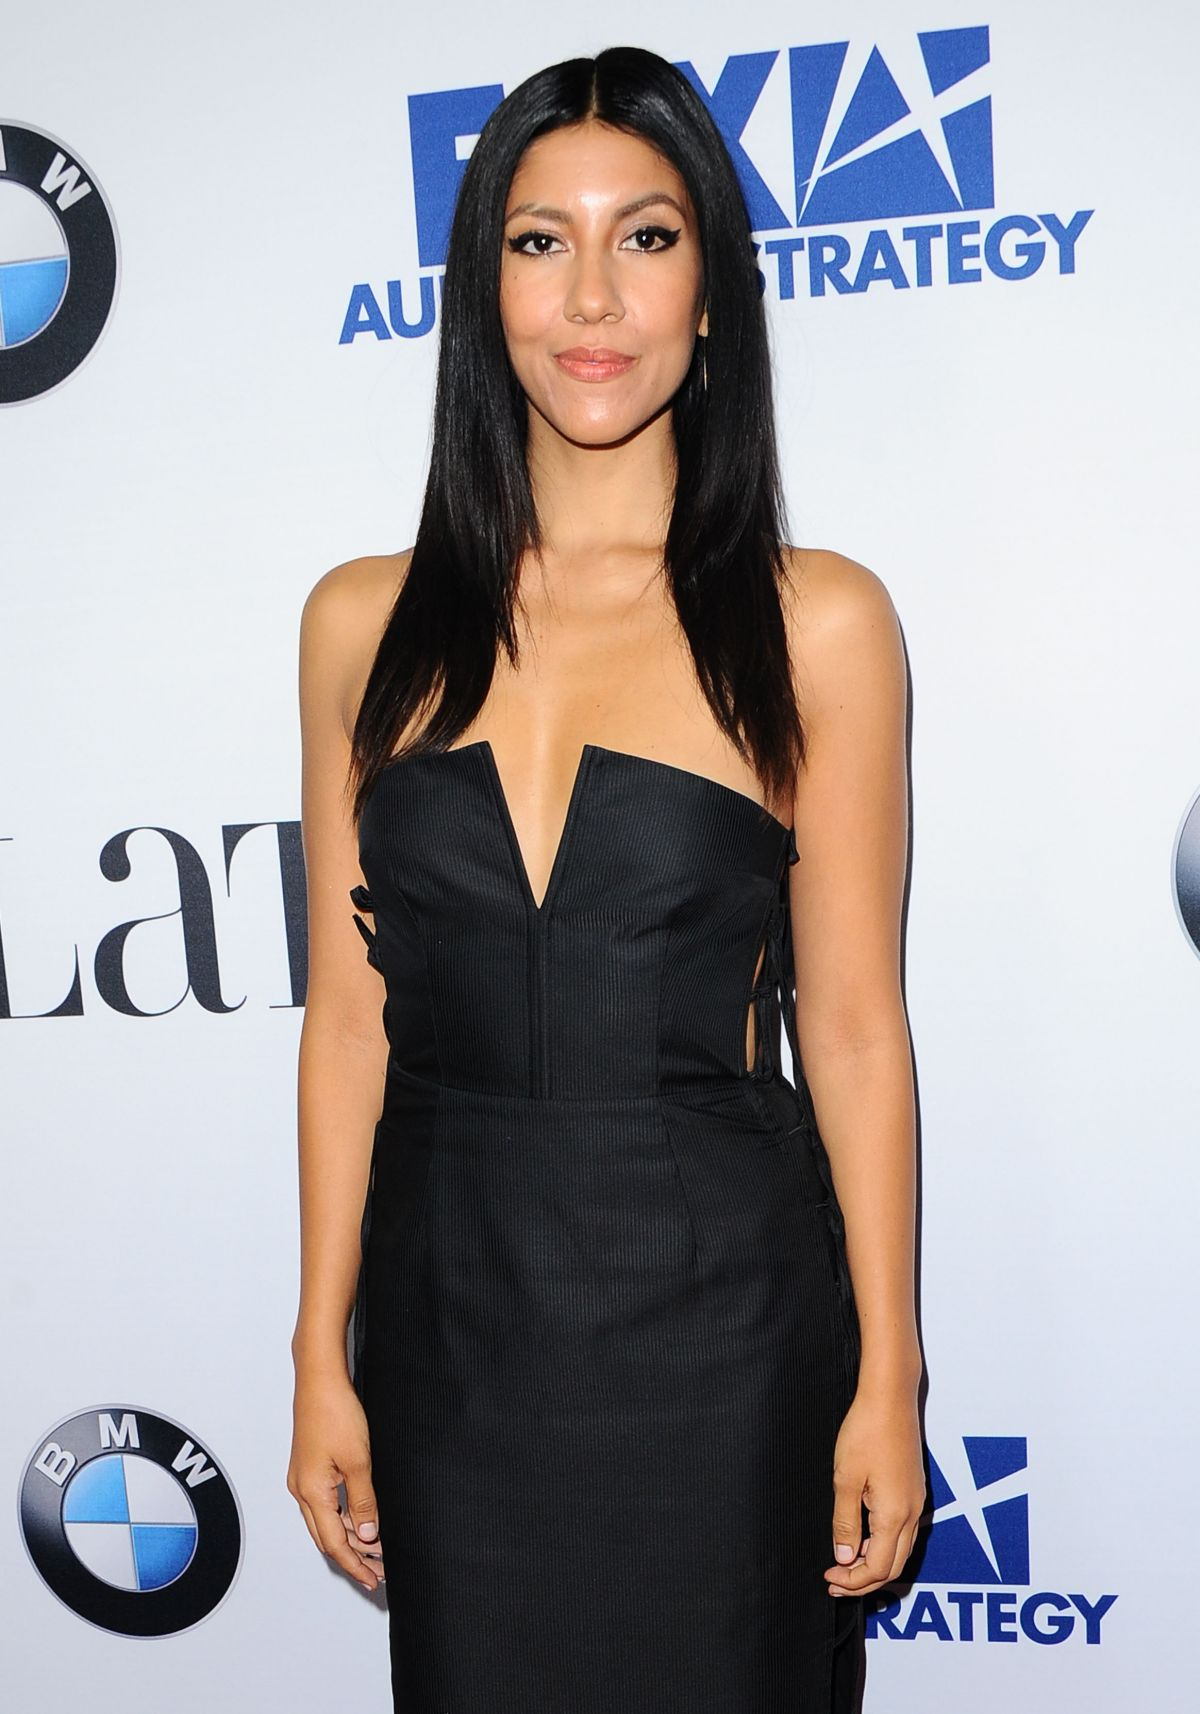 STEPHANIE BEATRIZ at Latina Hot List Party in West Hollywood 10/06/2015